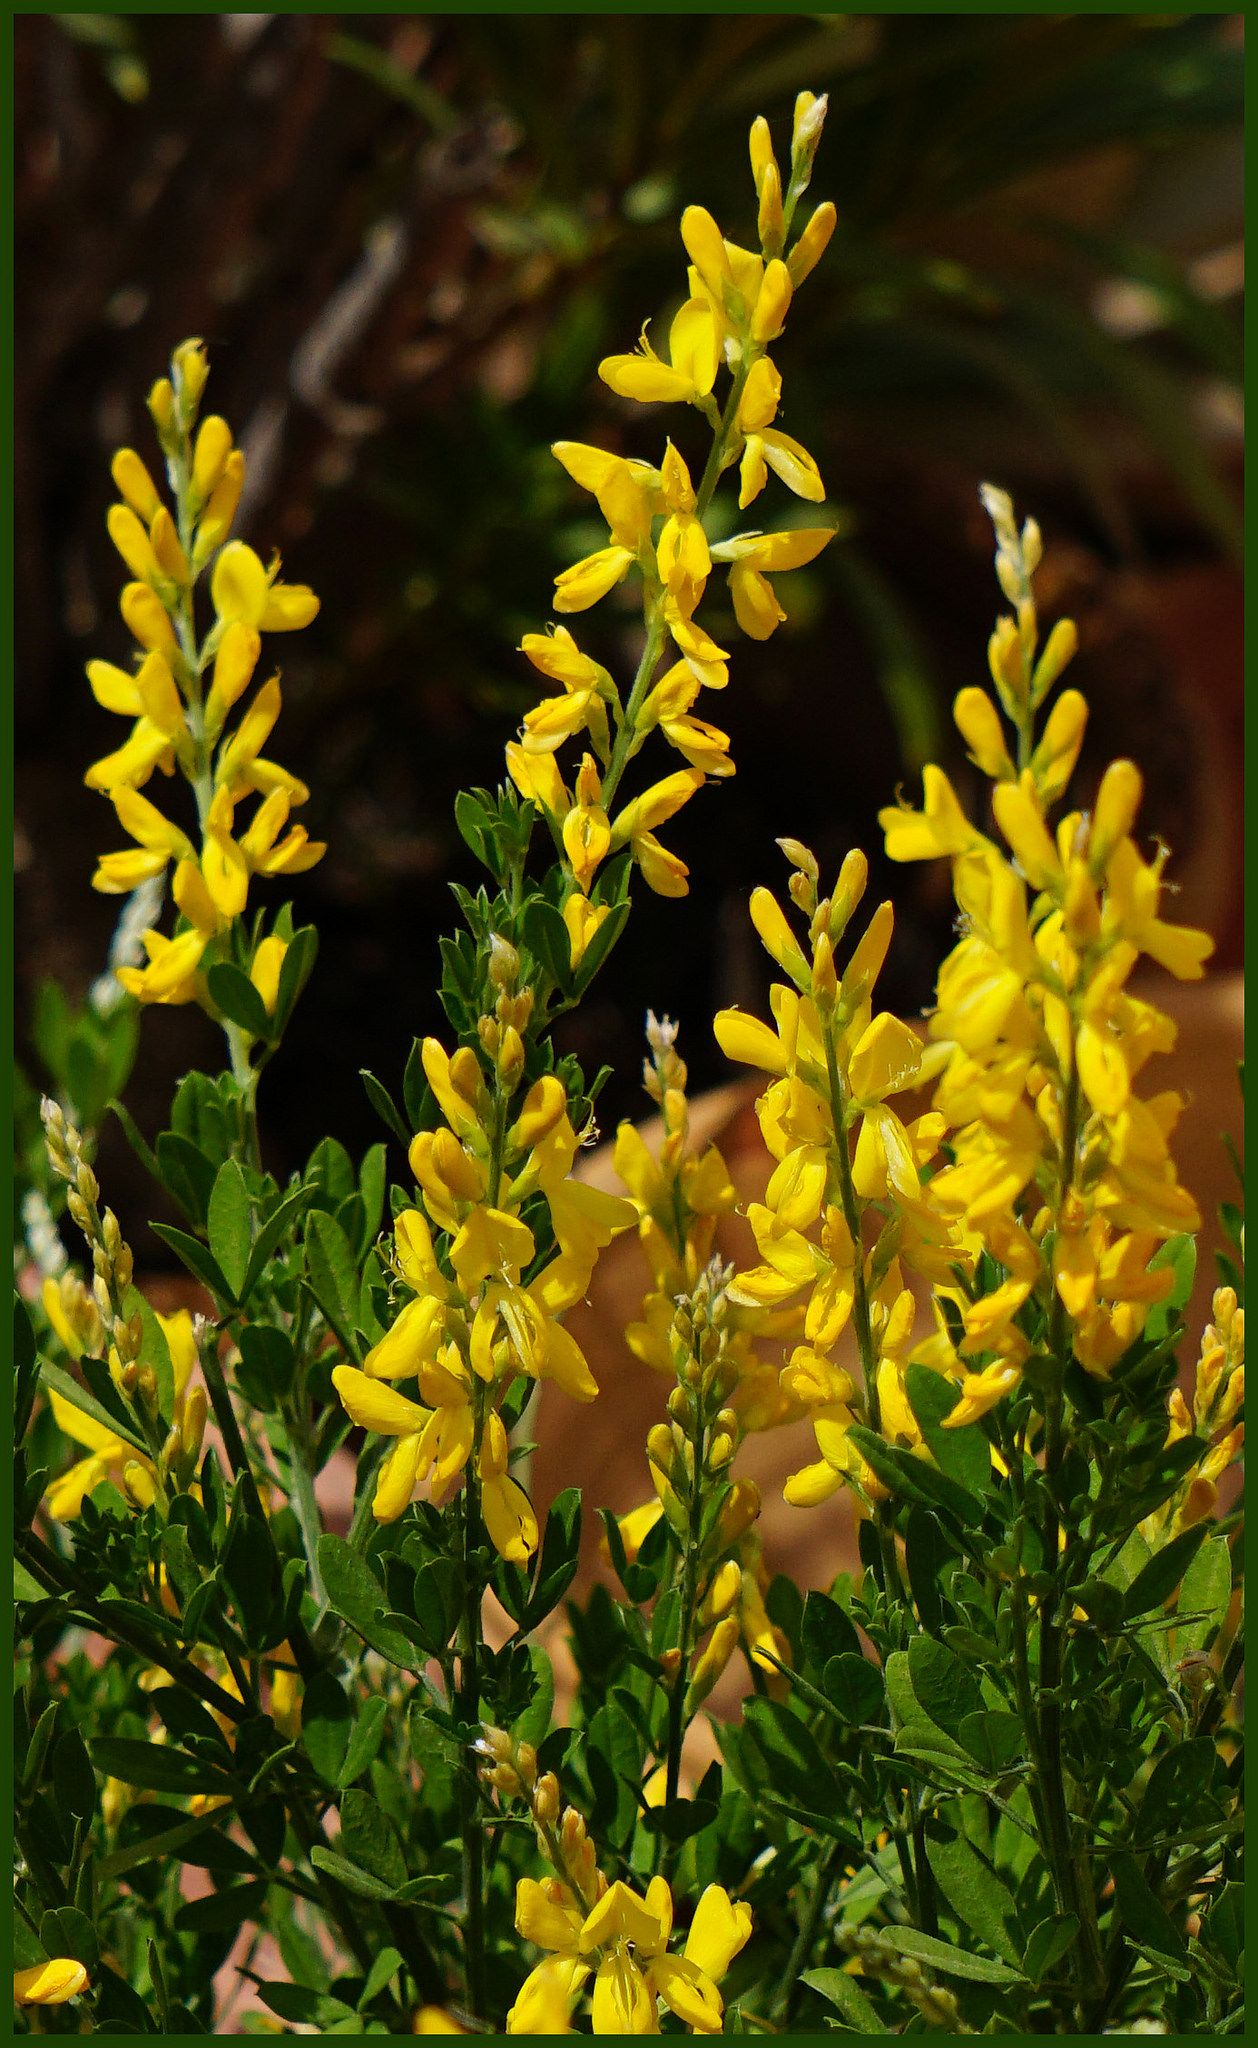 Broom Bush In Bloom Usual For Rocky Slopes Here In Wales Nature Flowers Flowering Shrub Wild Wildfl Plants Garden Inspiration Beautiful Flowers